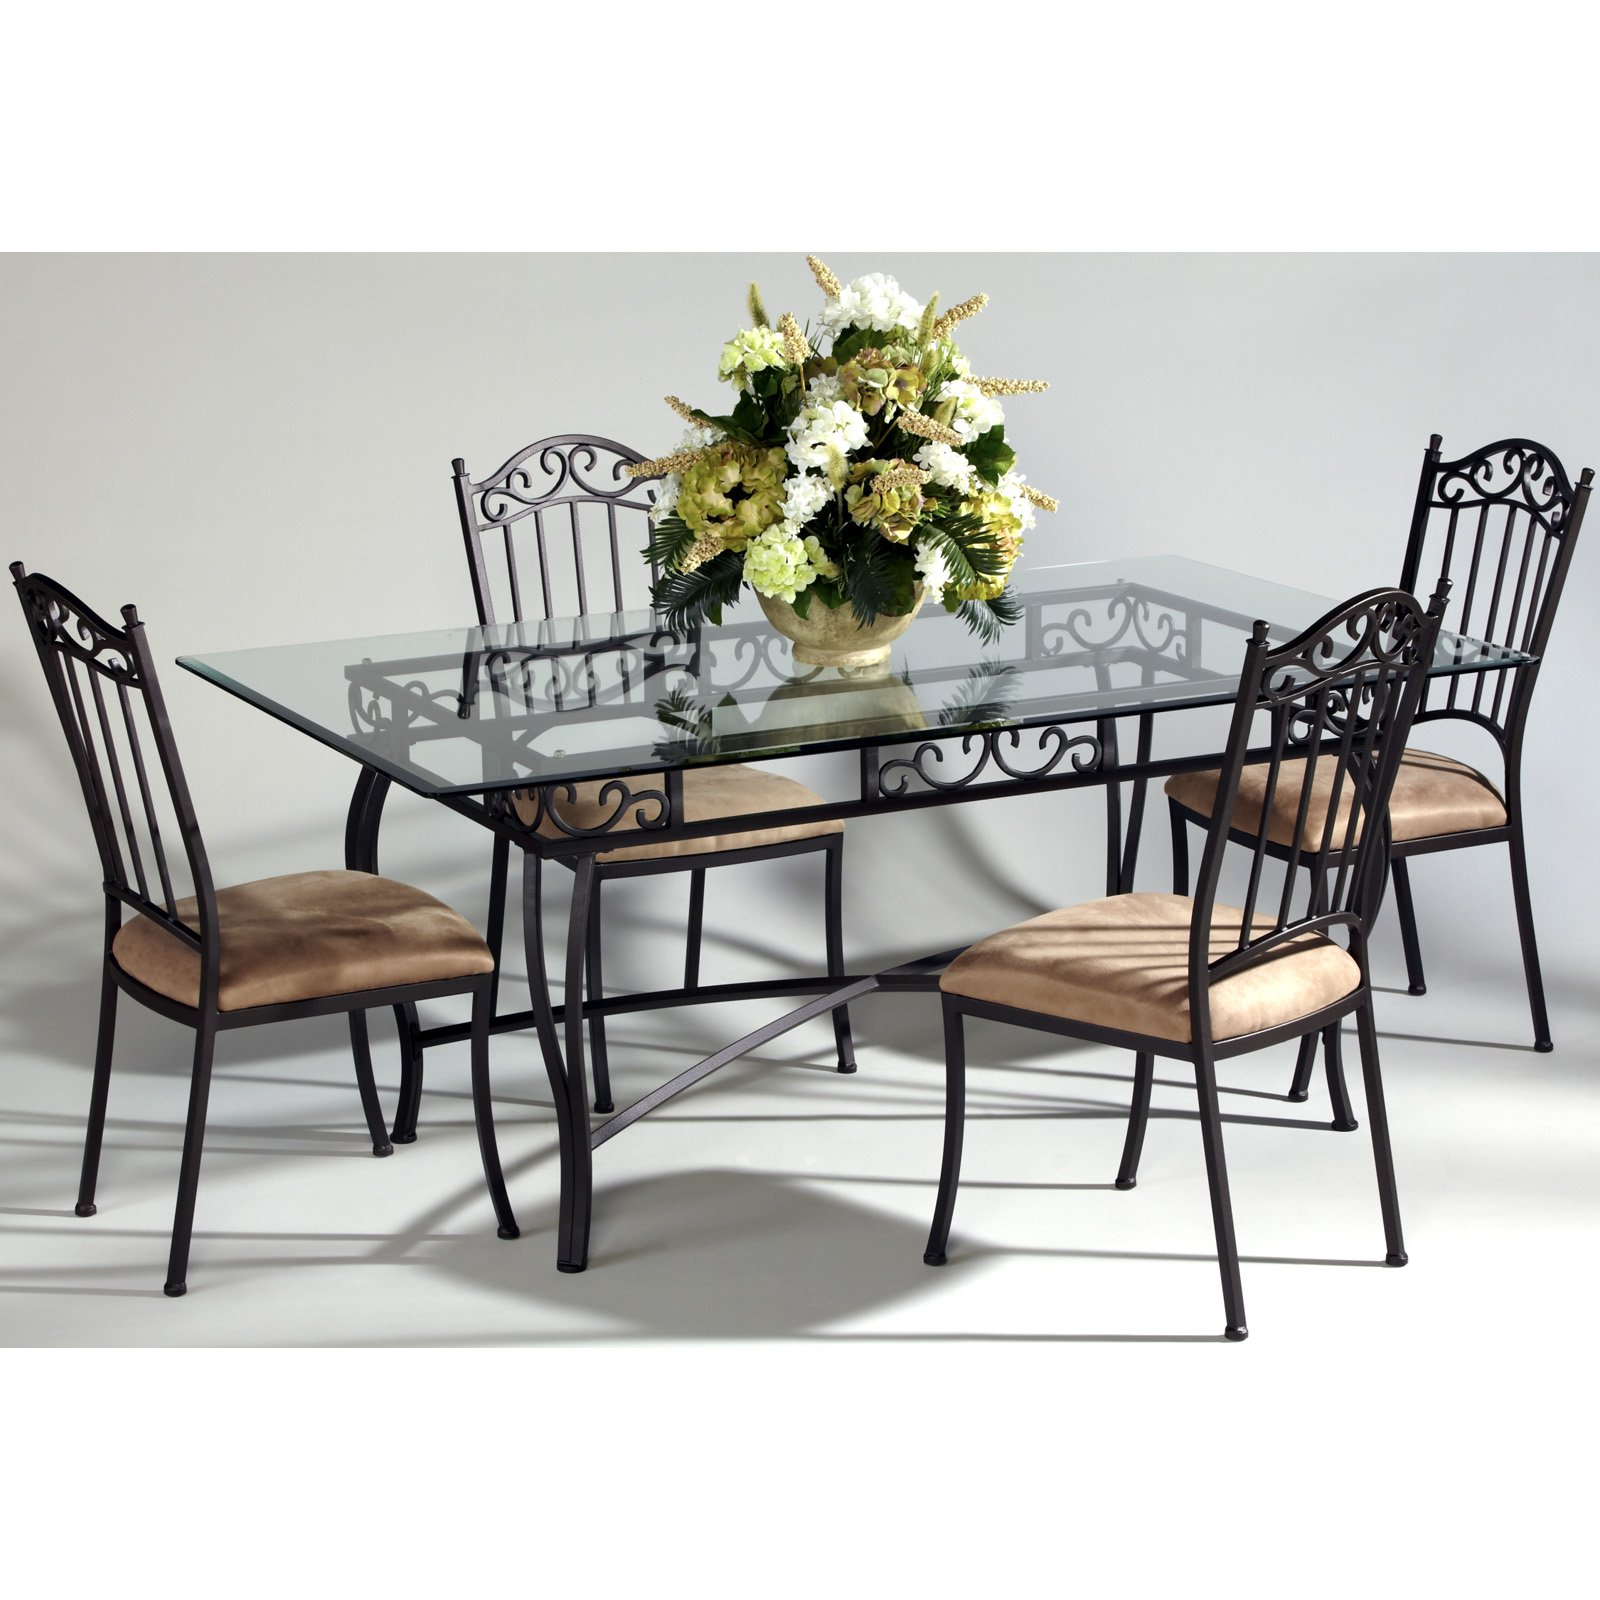 Chintaly Bethel Rectangular Wrought Iron Dining Table With Glass Top